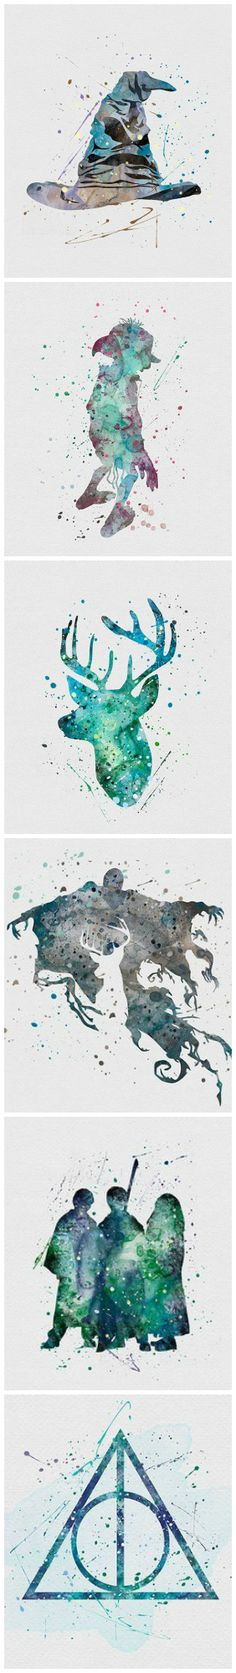 Harry Potter Watercolors                                                                                                                                                                                 More